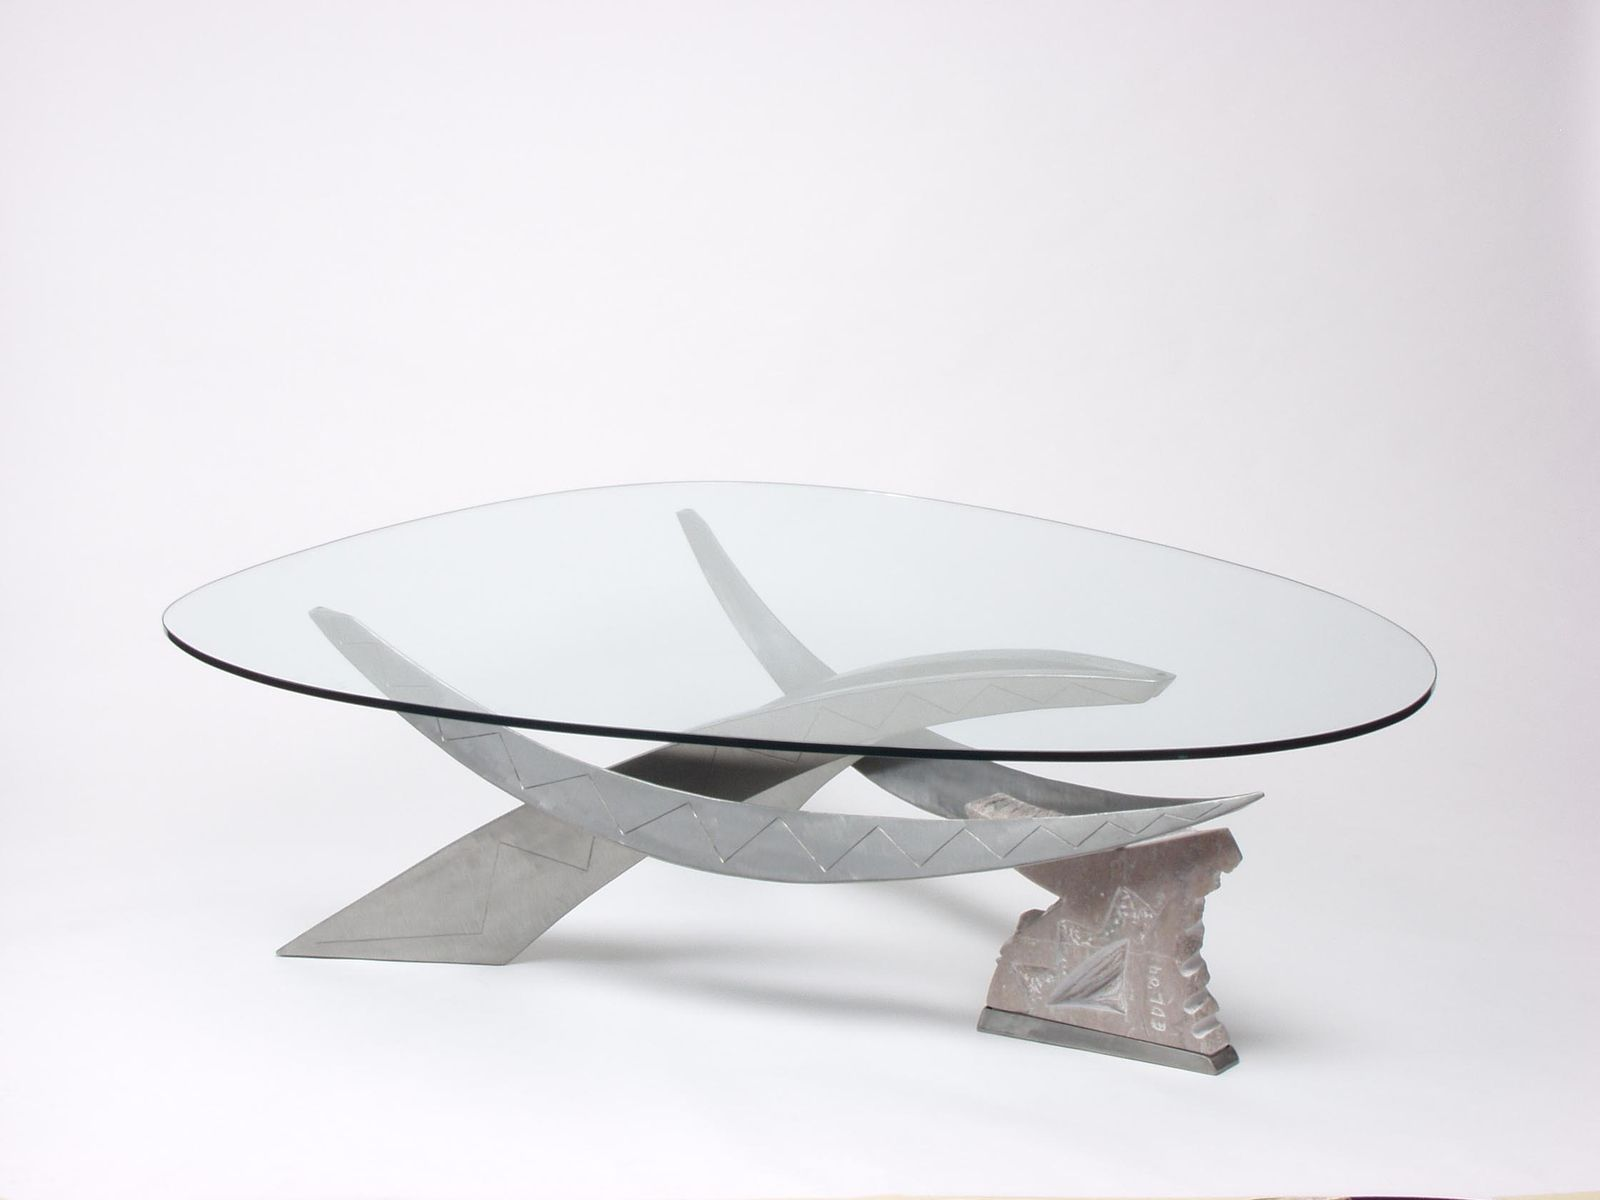 Hand Made Cantilever Coffee Table By Eric David Laxman